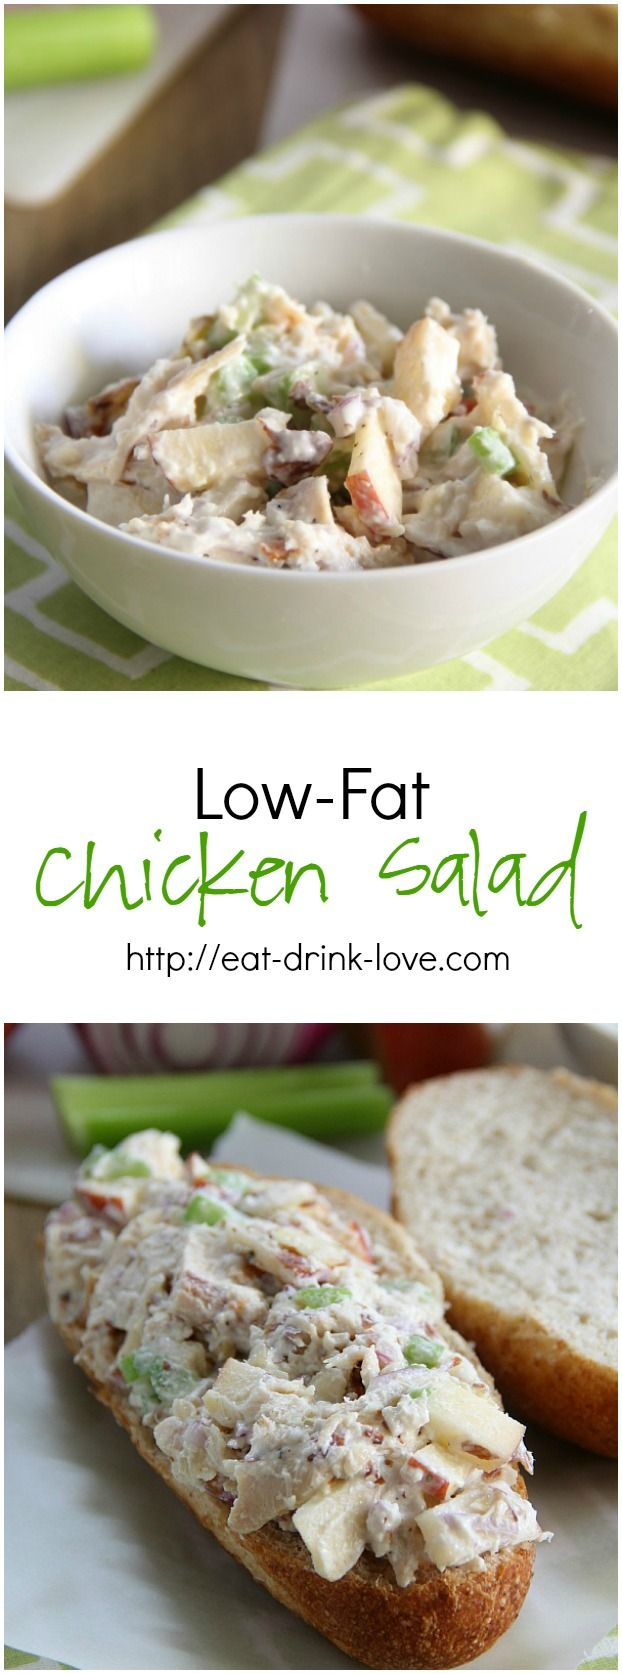 Low-Fat Chicken Salad, absolutely perfect for lunch on the go. Courtesy of @stephday